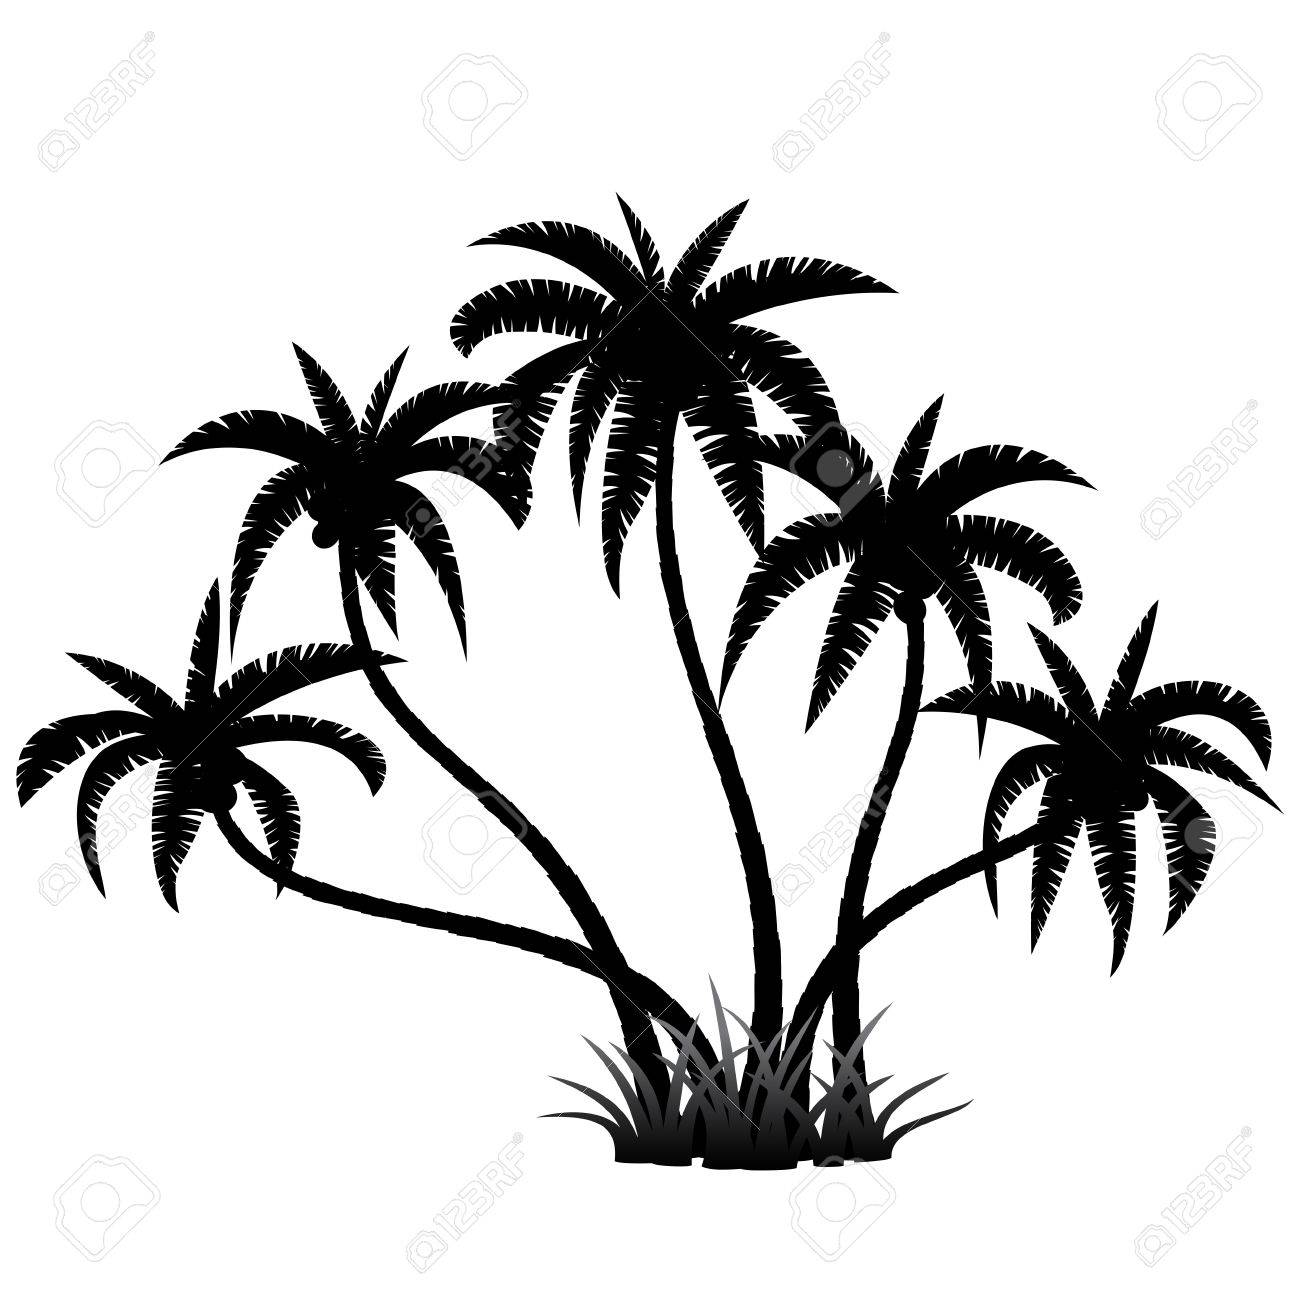 1300x1300 Palm Trees Silhouette On White, Vector Illustration Royalty Free